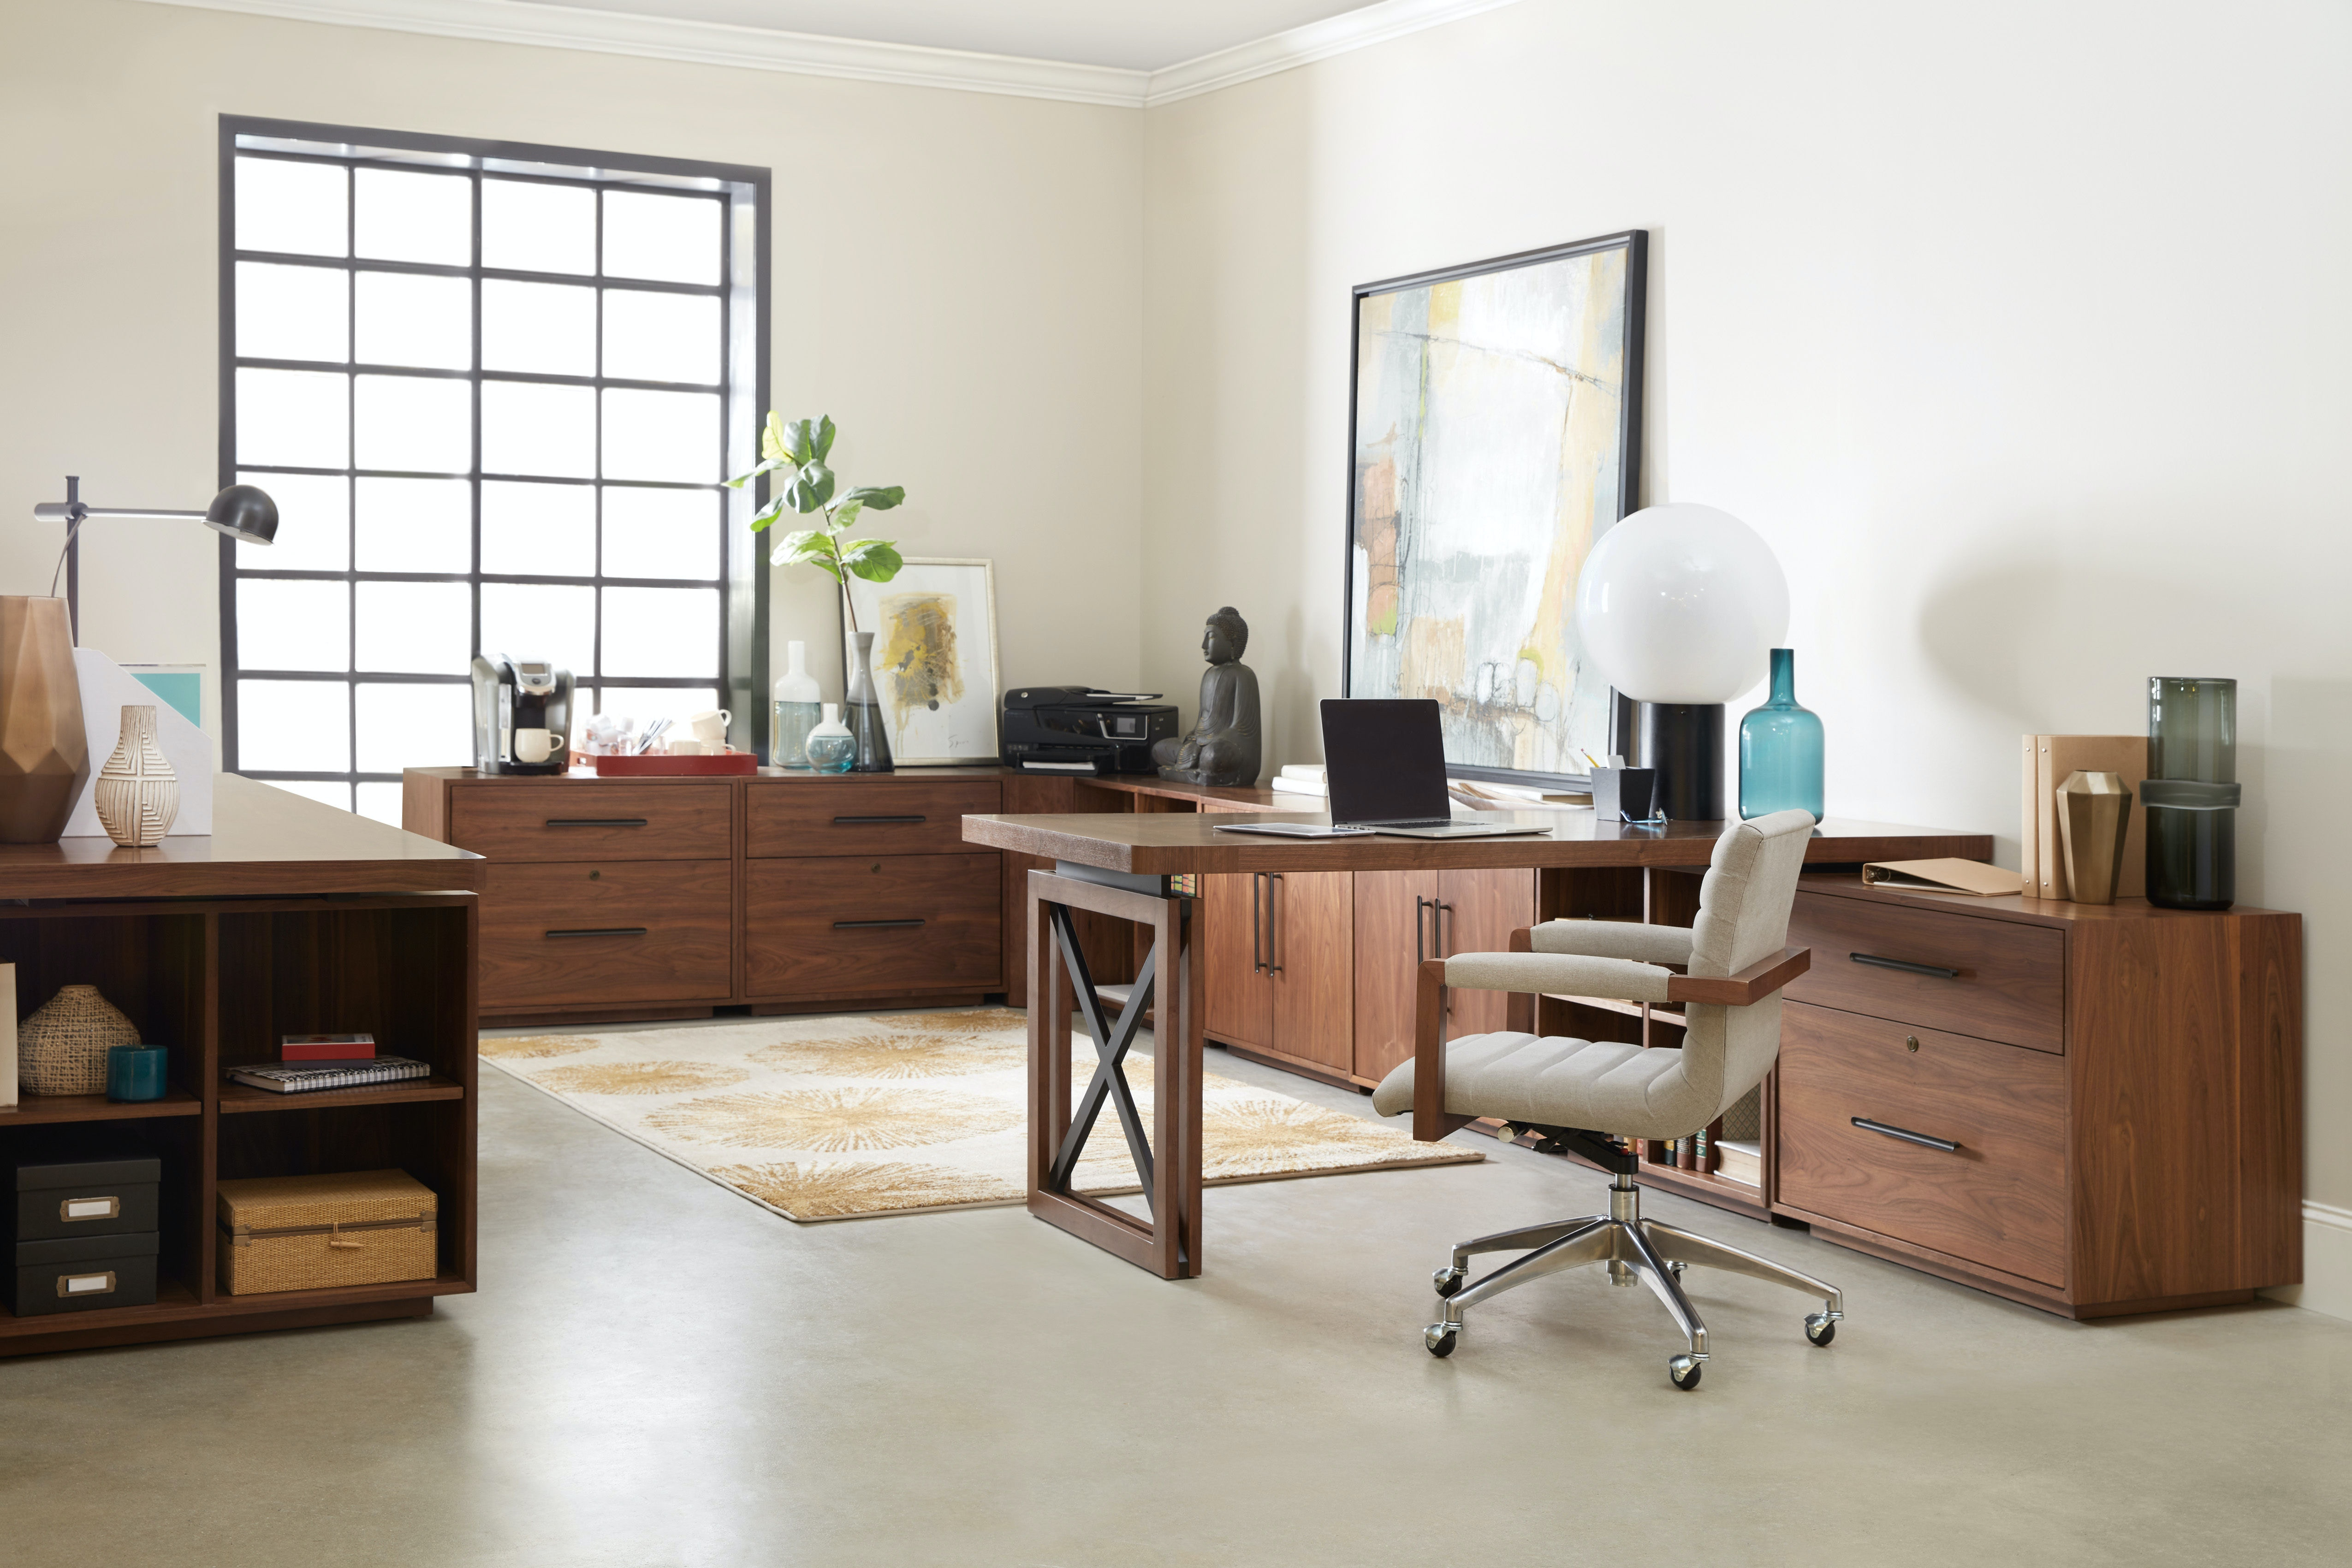 Genial Hooker Furniture Elon Modular Home Office